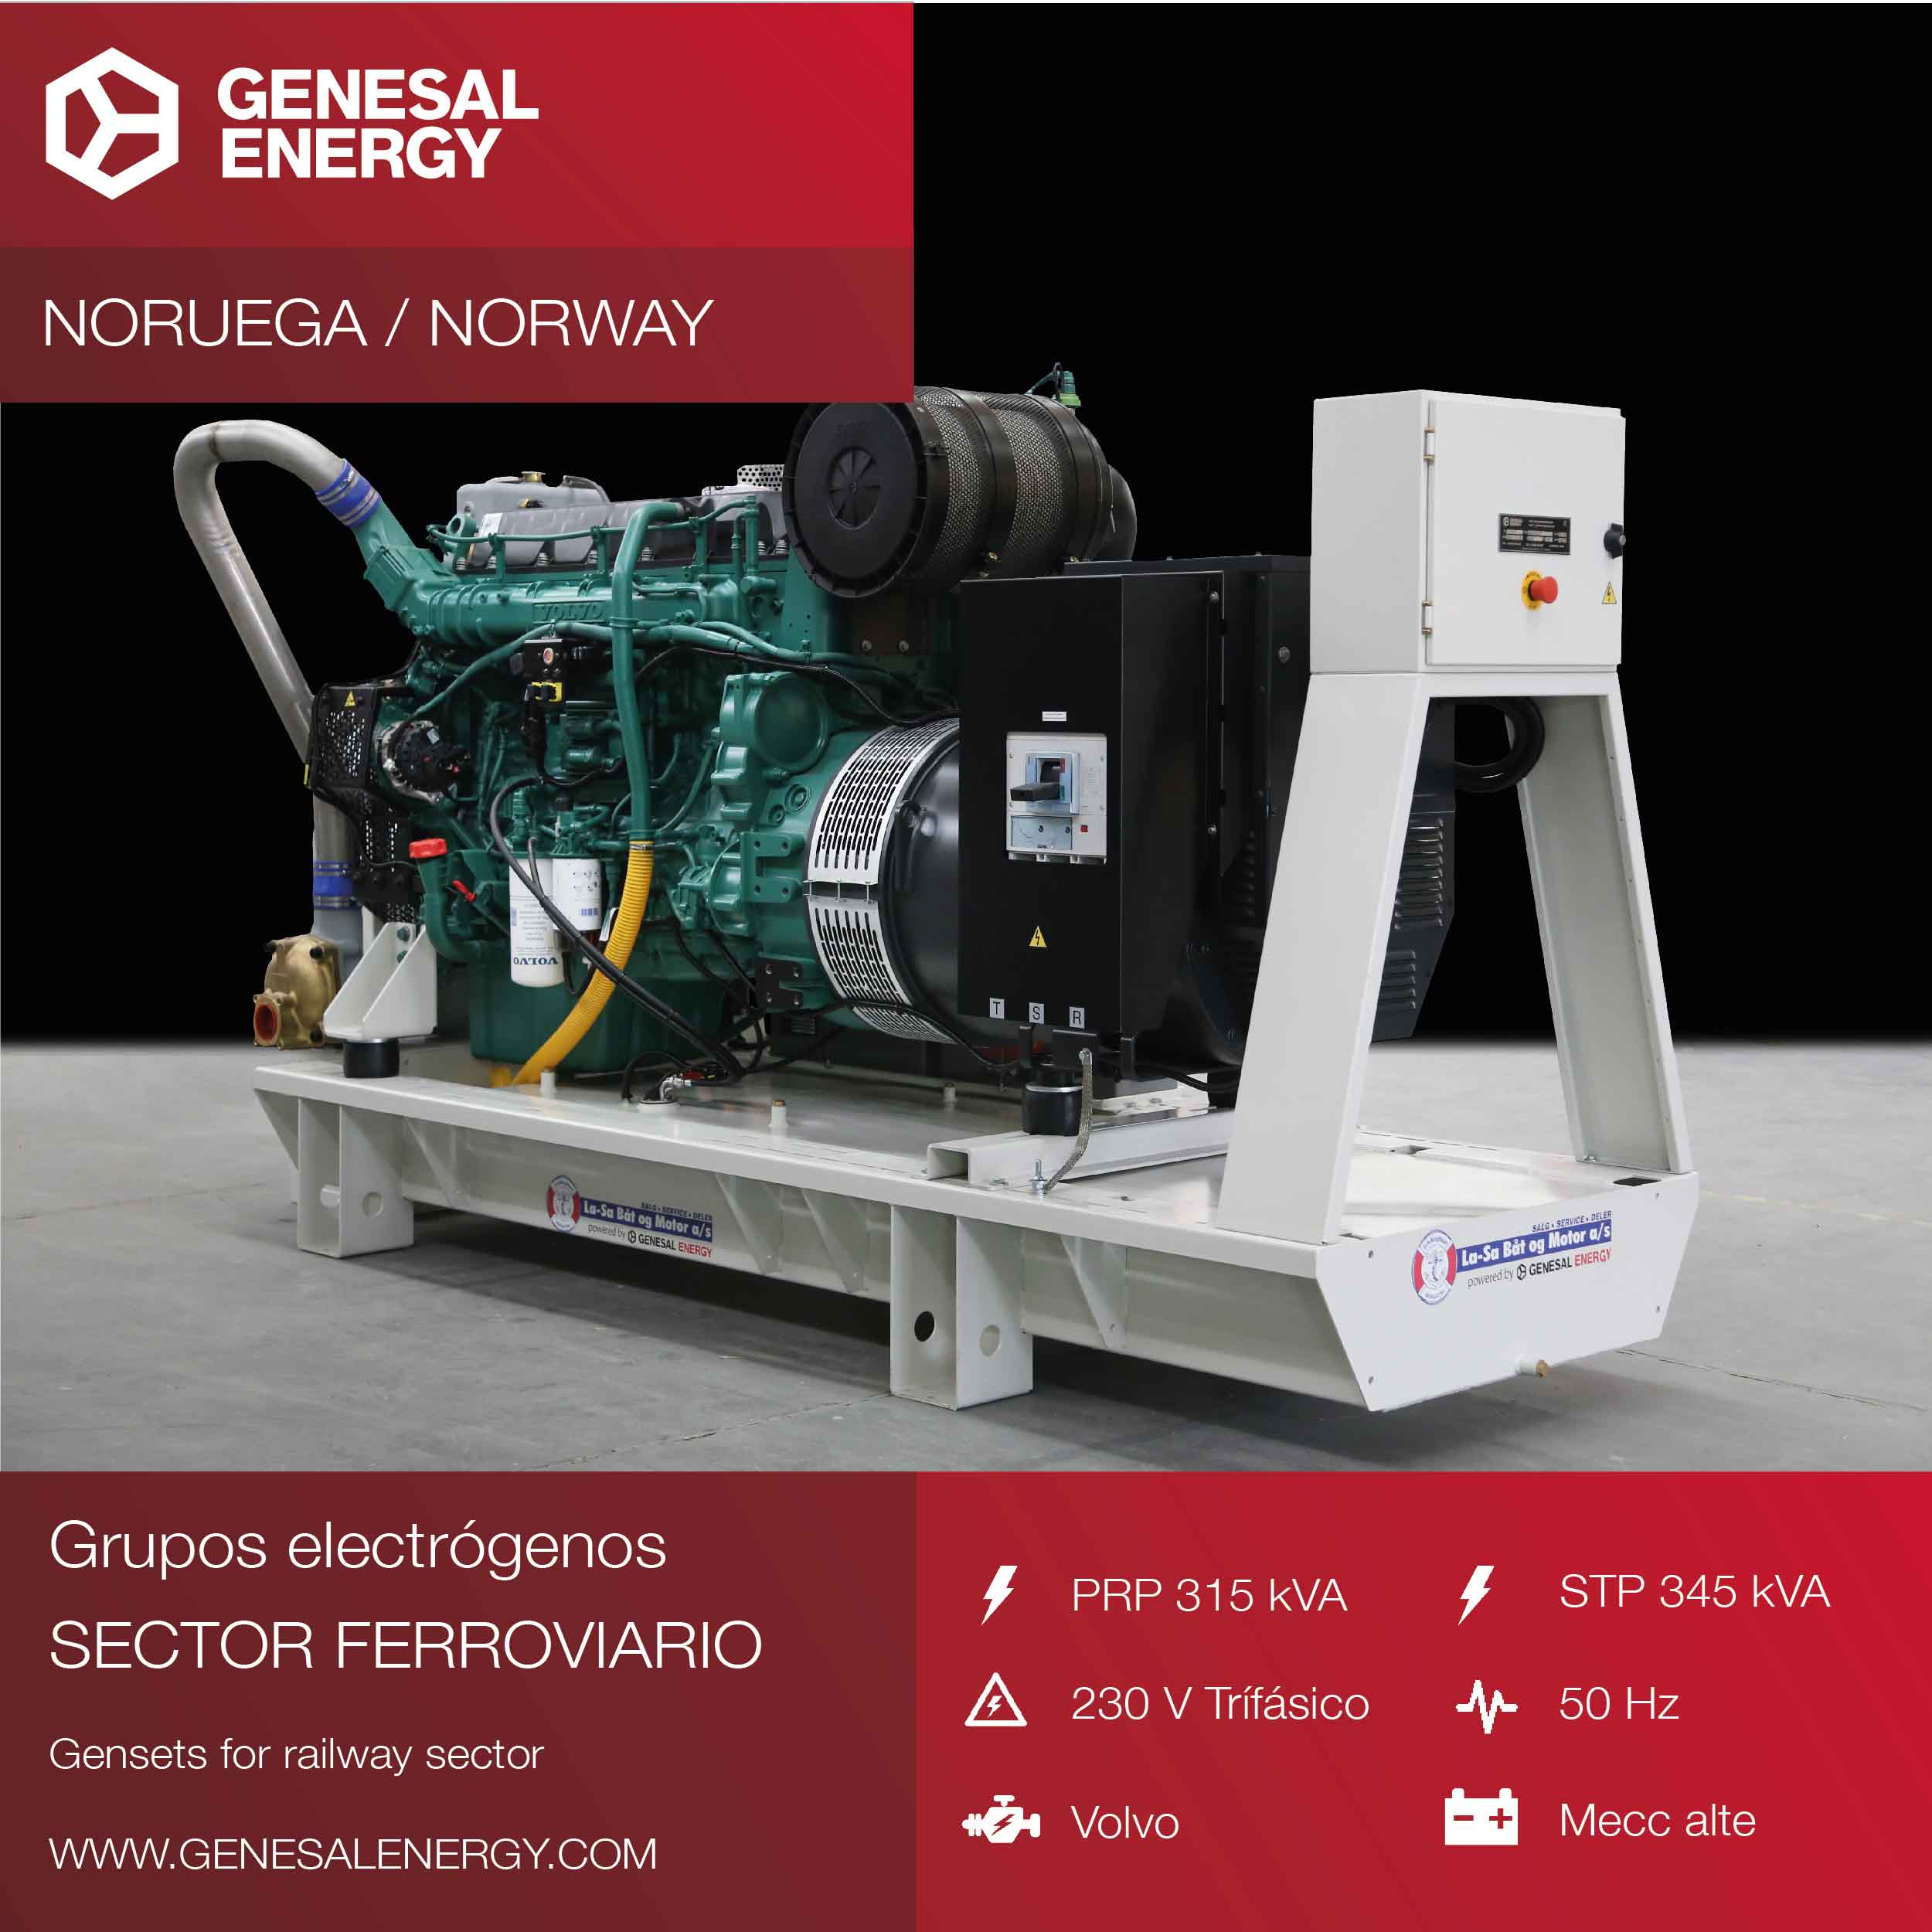 Emergency gensets for the railway sector